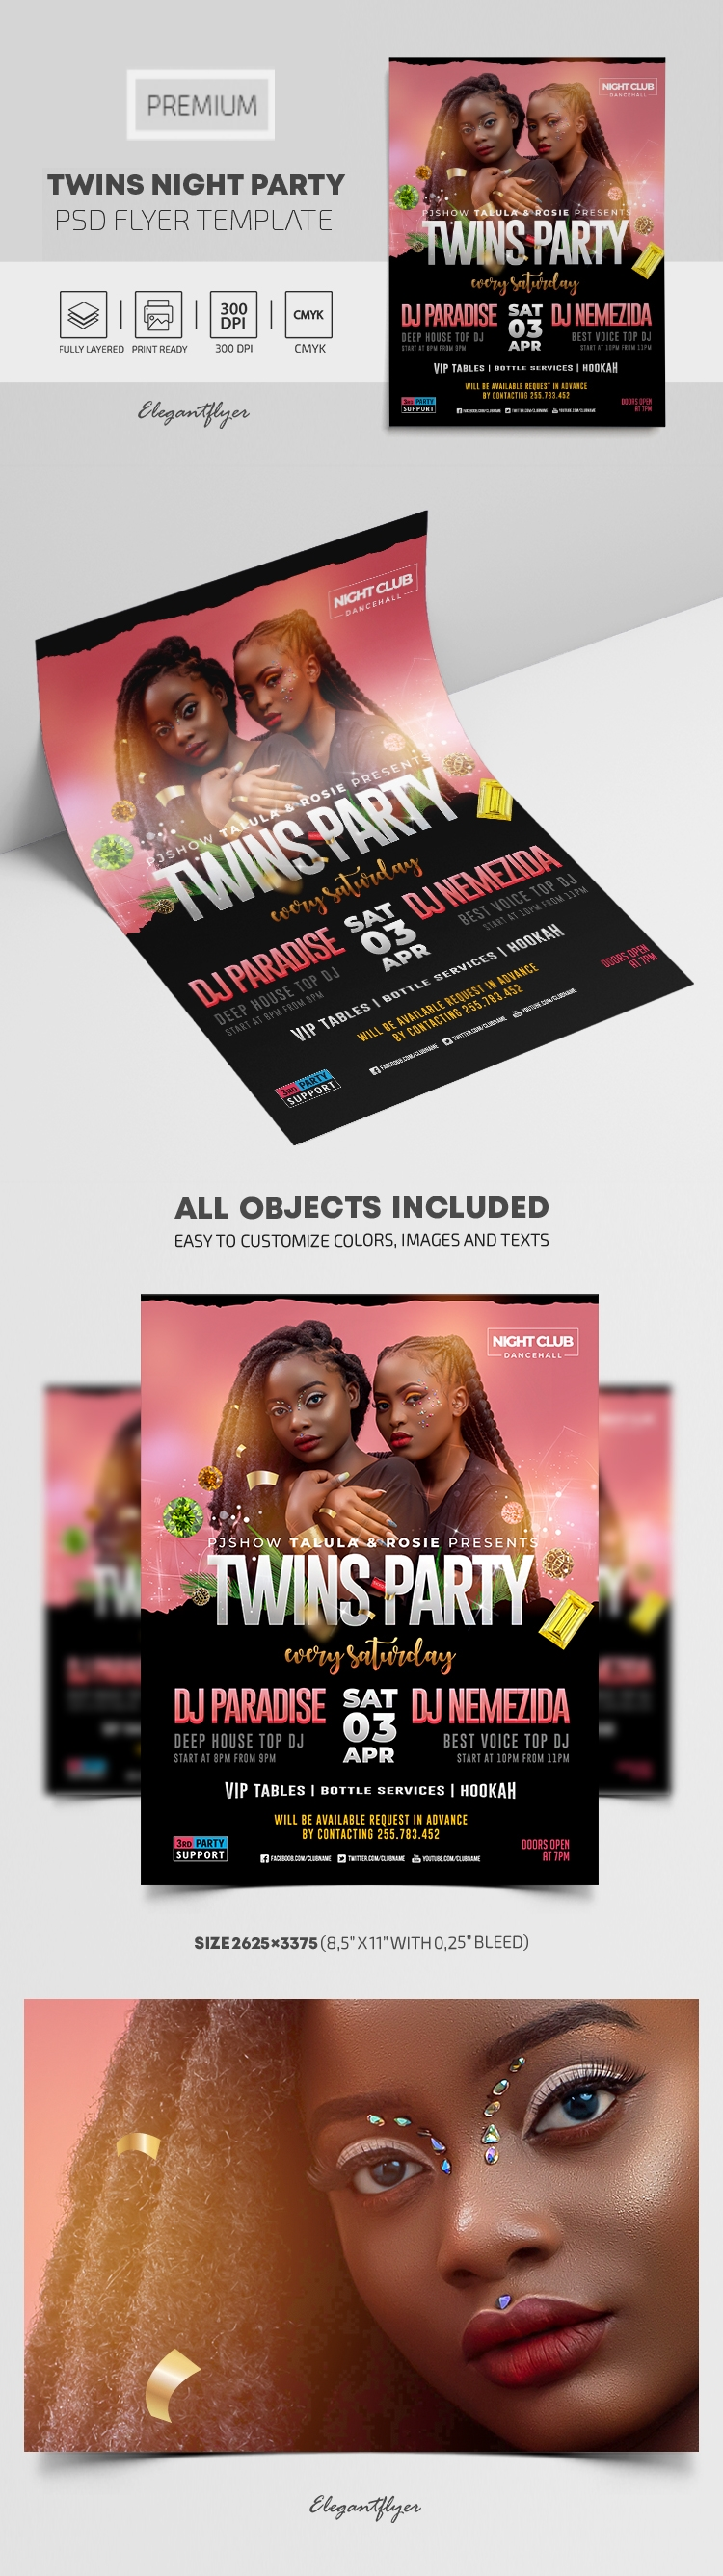 Twins Night Party – Premium PSD Flyer Template